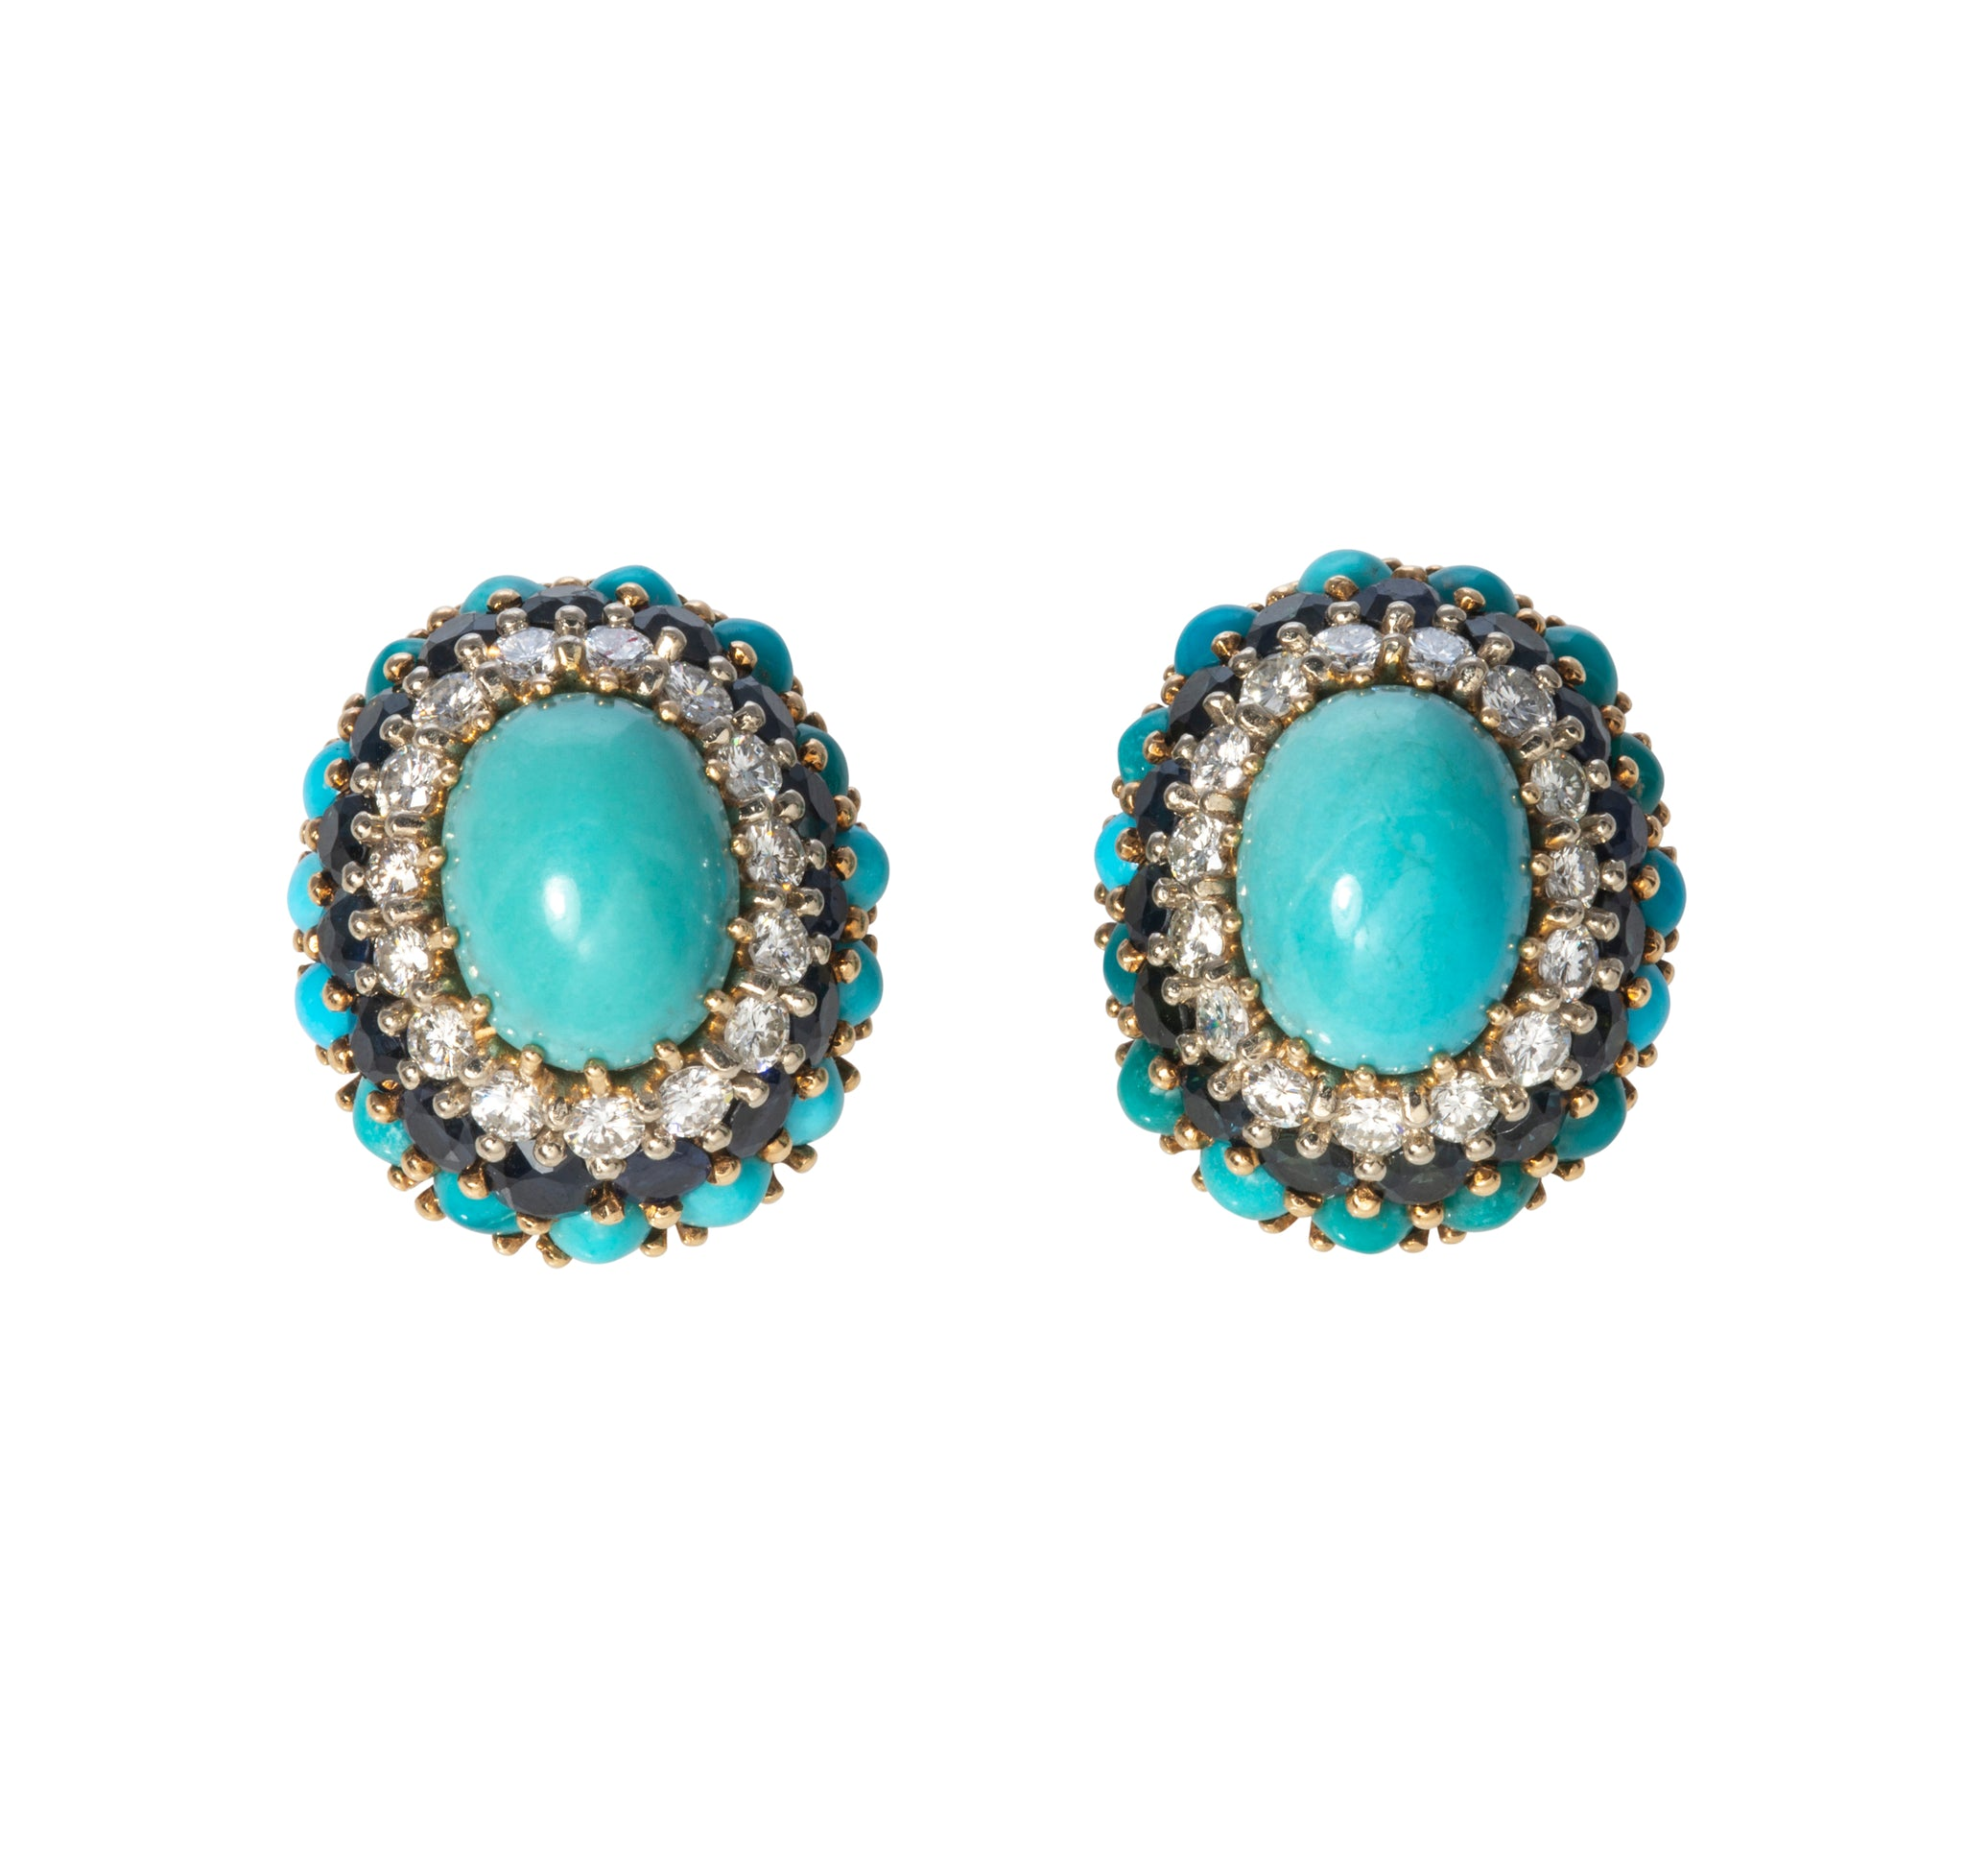 1960s Turquoise, Sapphire & Diamond 18K Gold Earrings